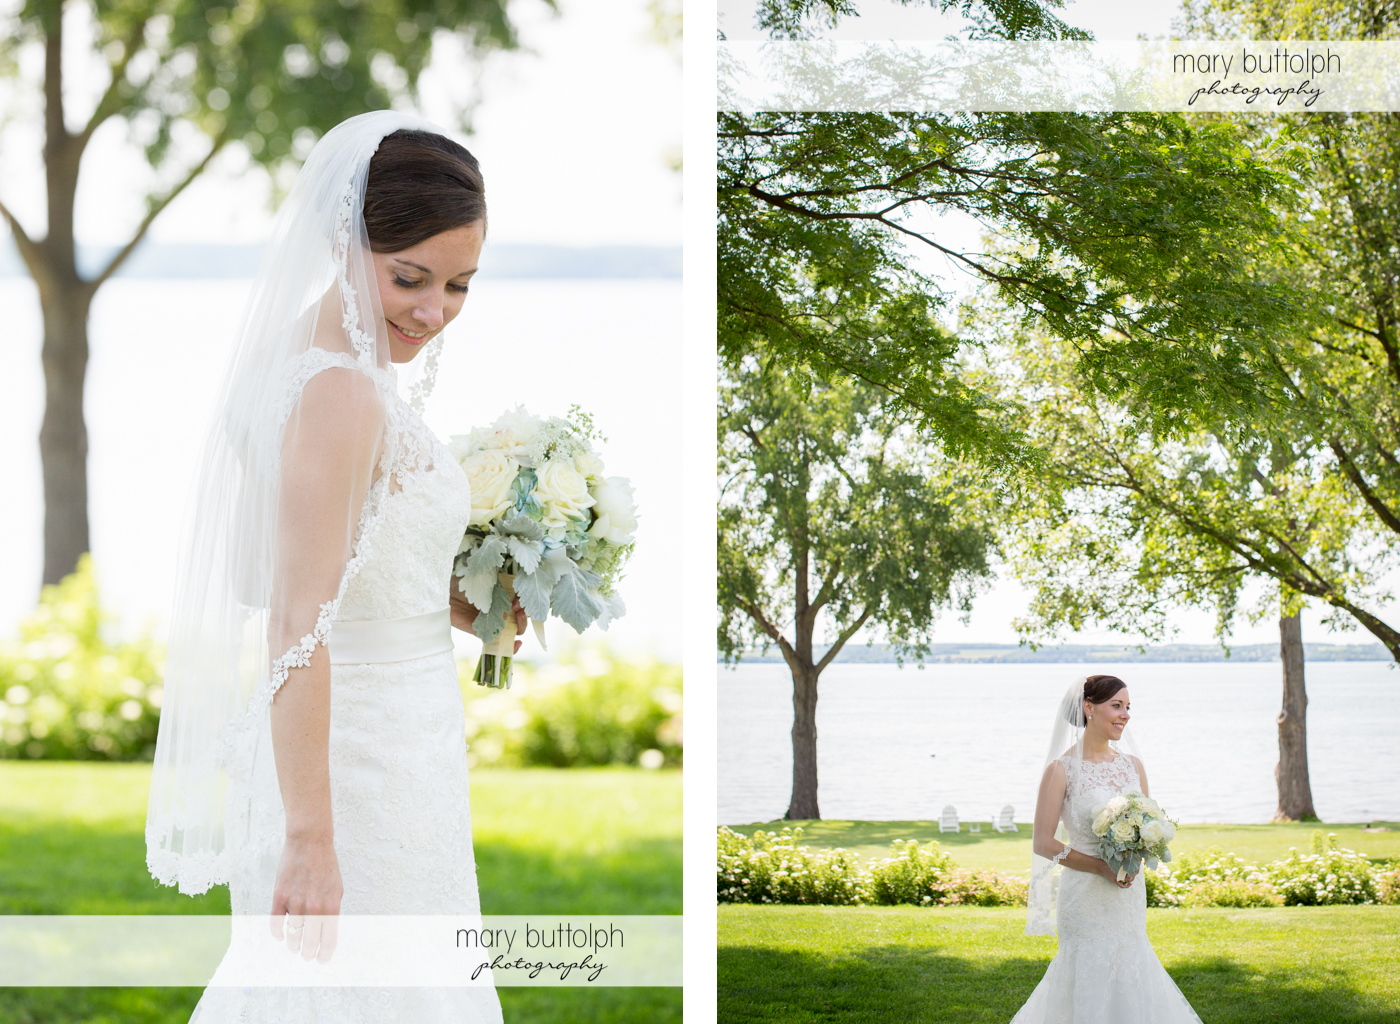 Two shots of the bride with a bouquet in the garden at the Inns of Aurora Wedding